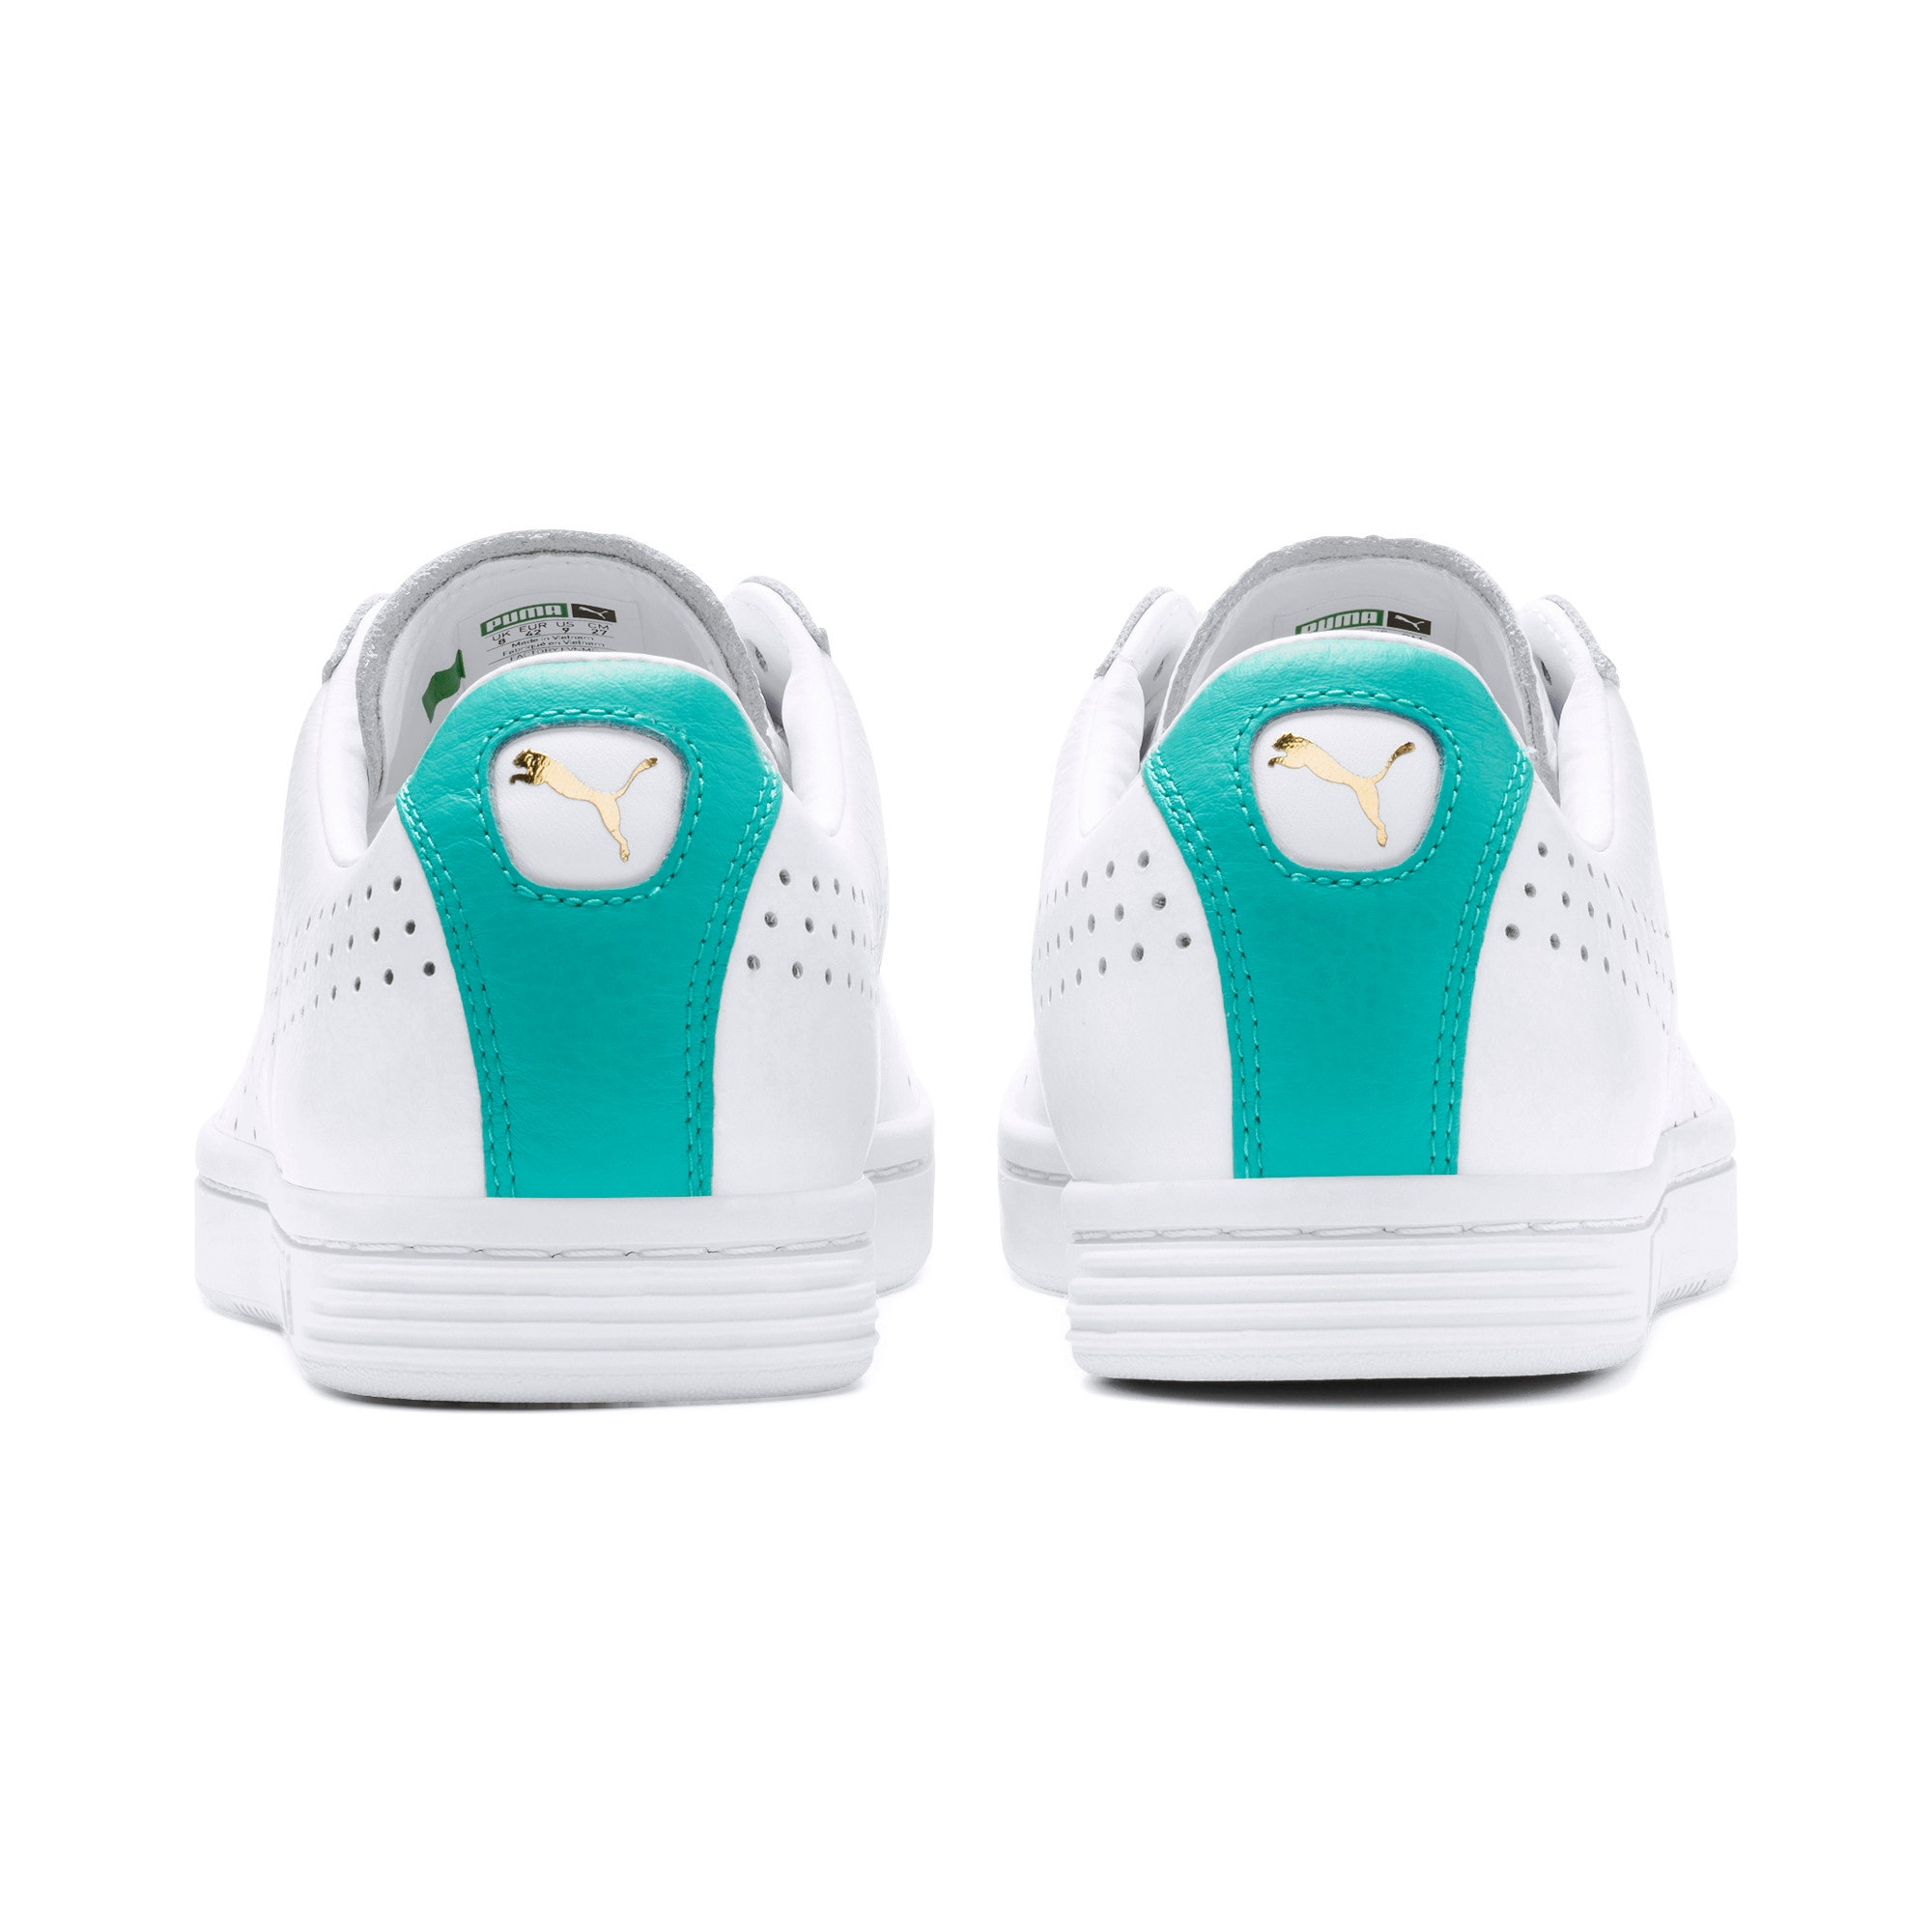 Thumbnail 5 of Court Star Sneakers, Puma White-Blue Turquoise, medium